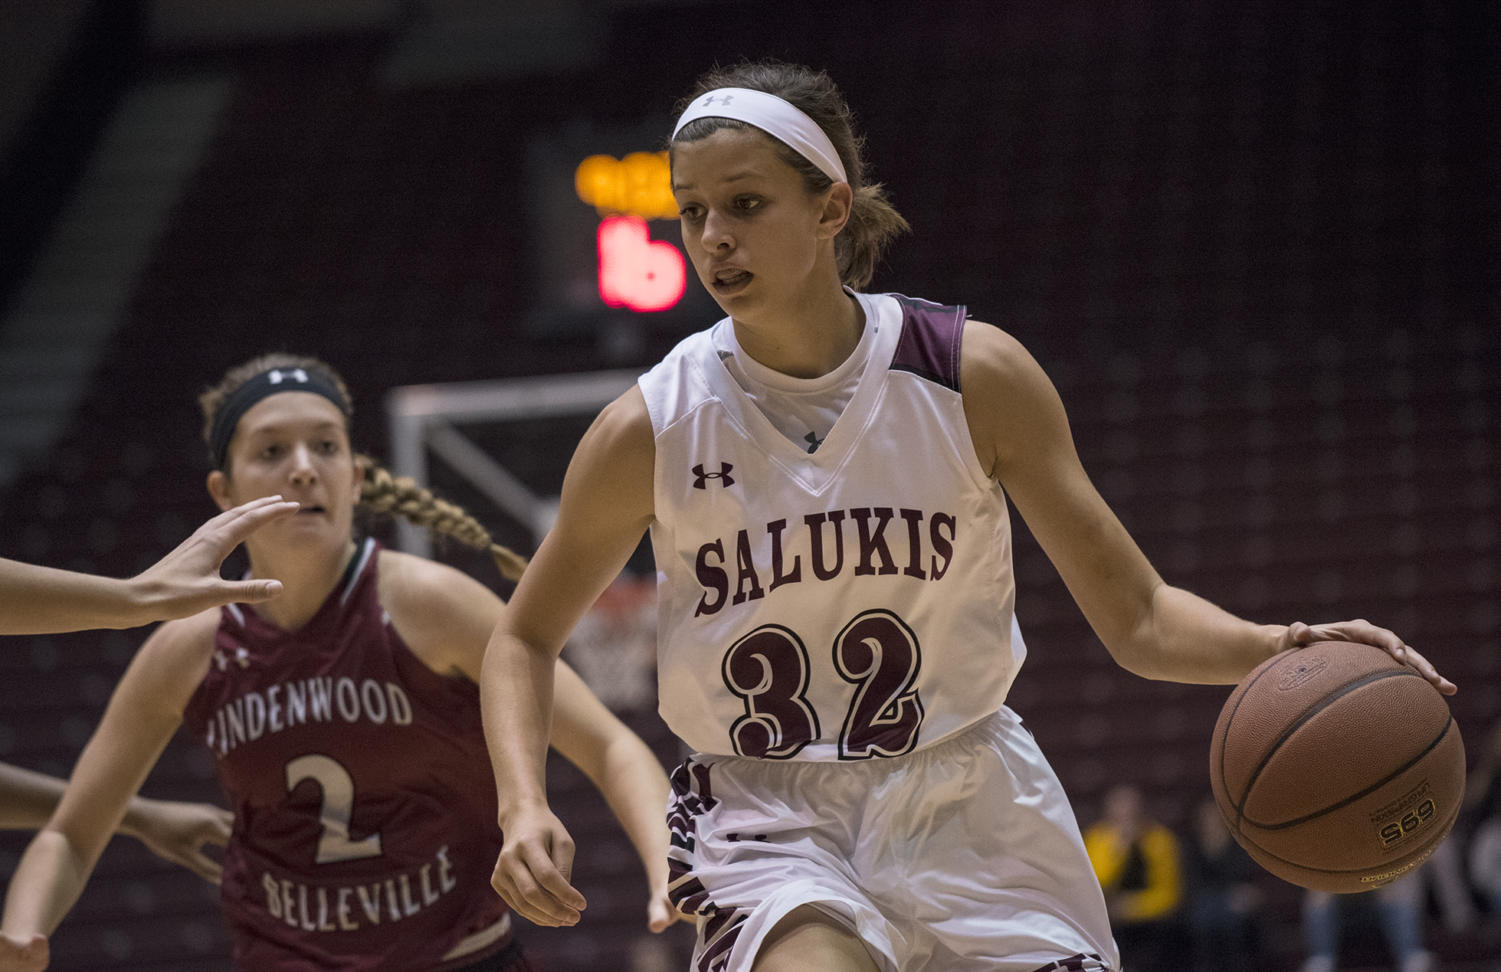 Senior guard Kylie Giebelhausen looks to make a pass Friday, Nov. 3, 2017, during the Salukis 90-68 win against the Lindenwood Lynx at SIU Arena. (Athena Chrysanthou | @Chrysant1Athena)